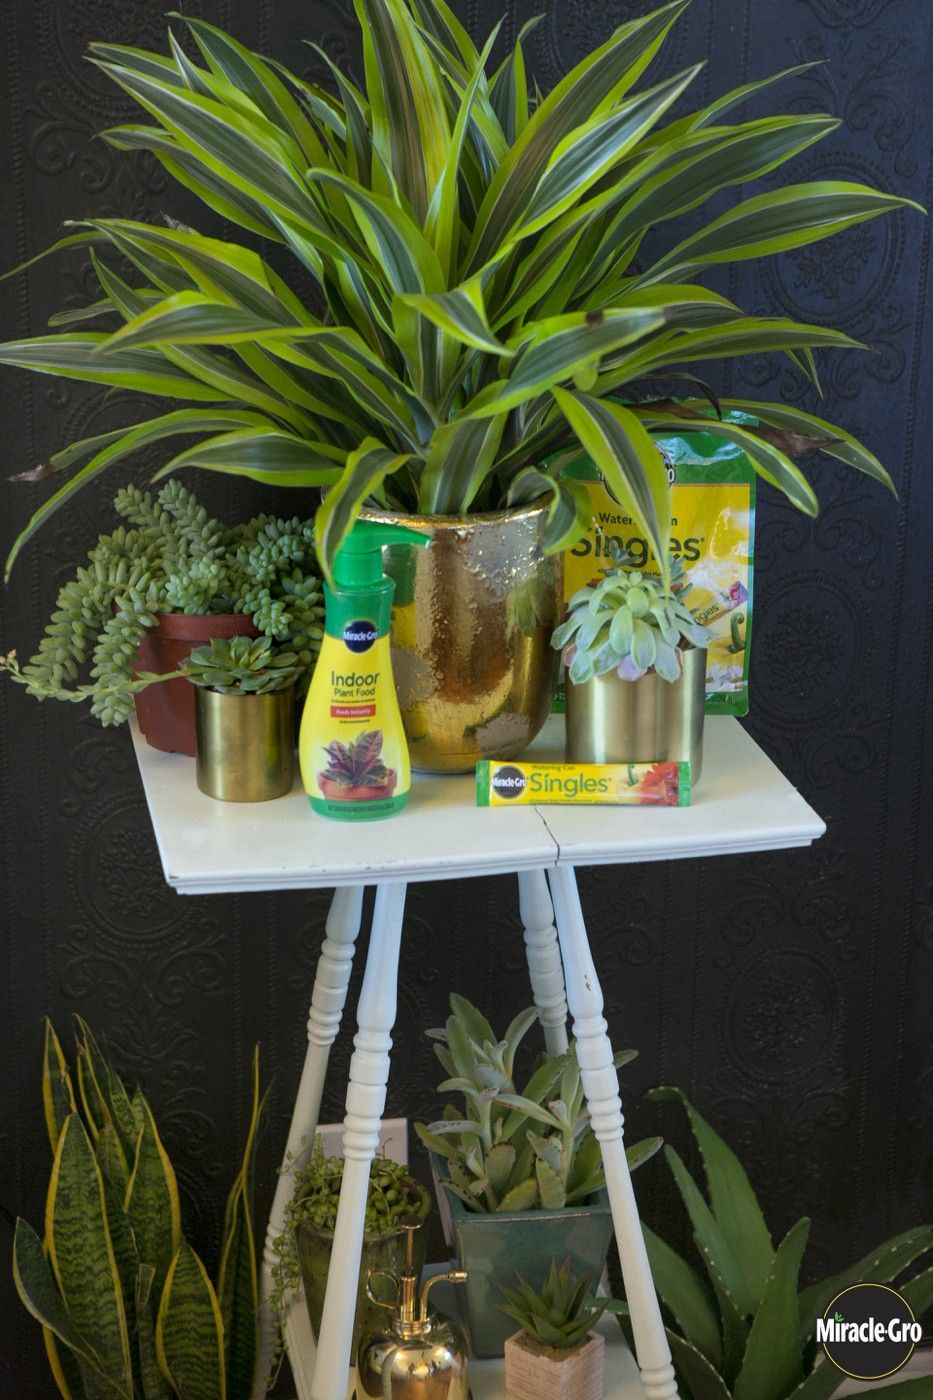 Do you have an indoor plant food routine yet? It's time to make one so your plants flourish! Click to see all the ways Miracle-Gro can help.